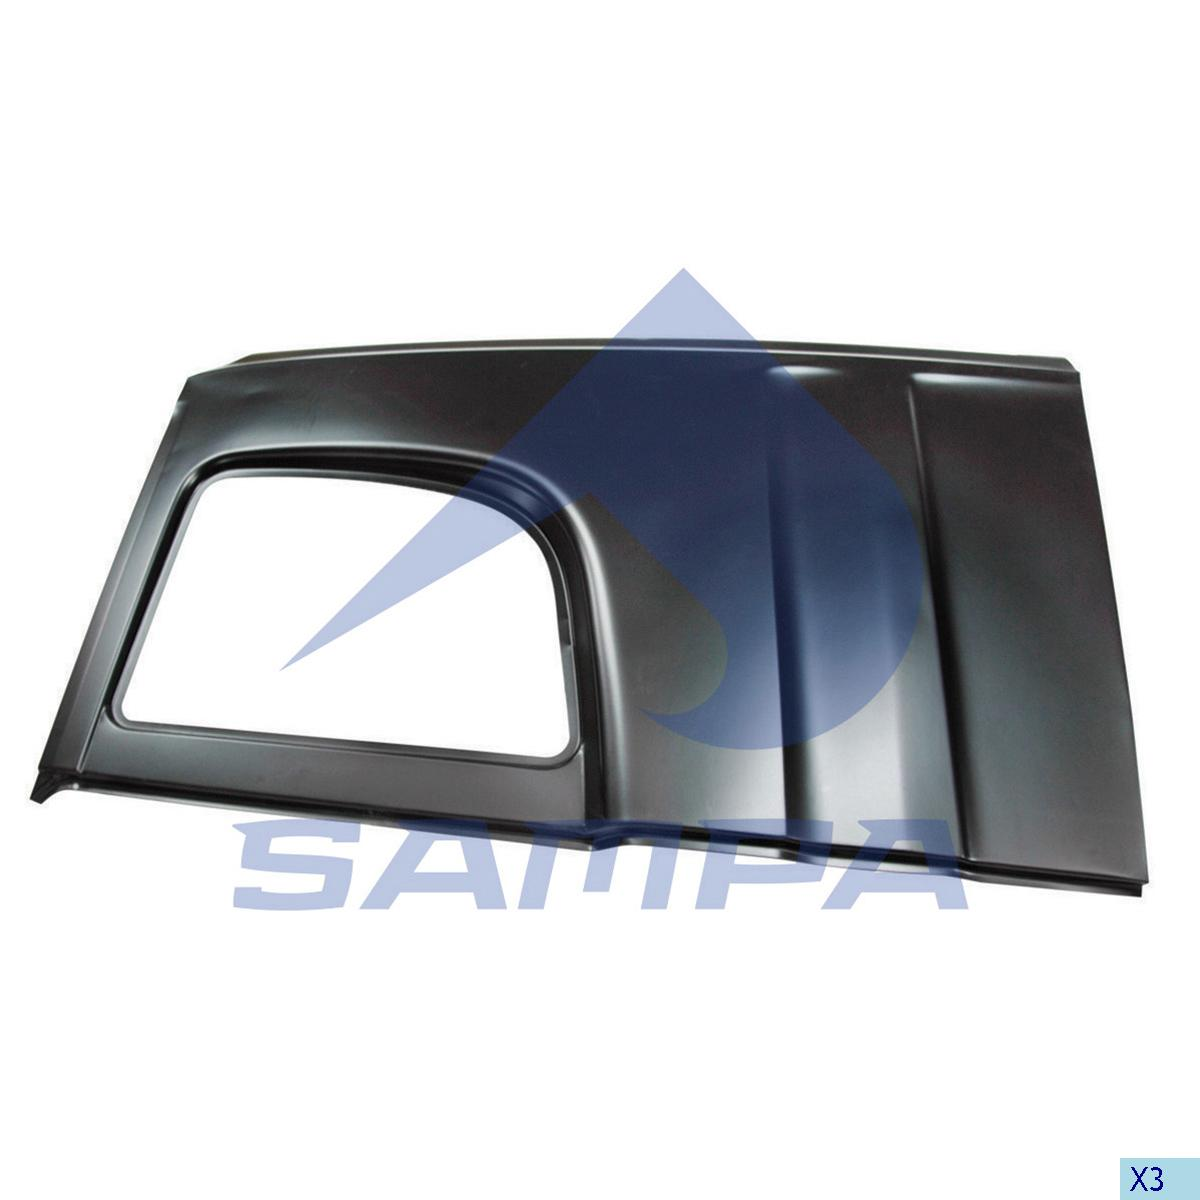 Side Panel, Scania, Cab